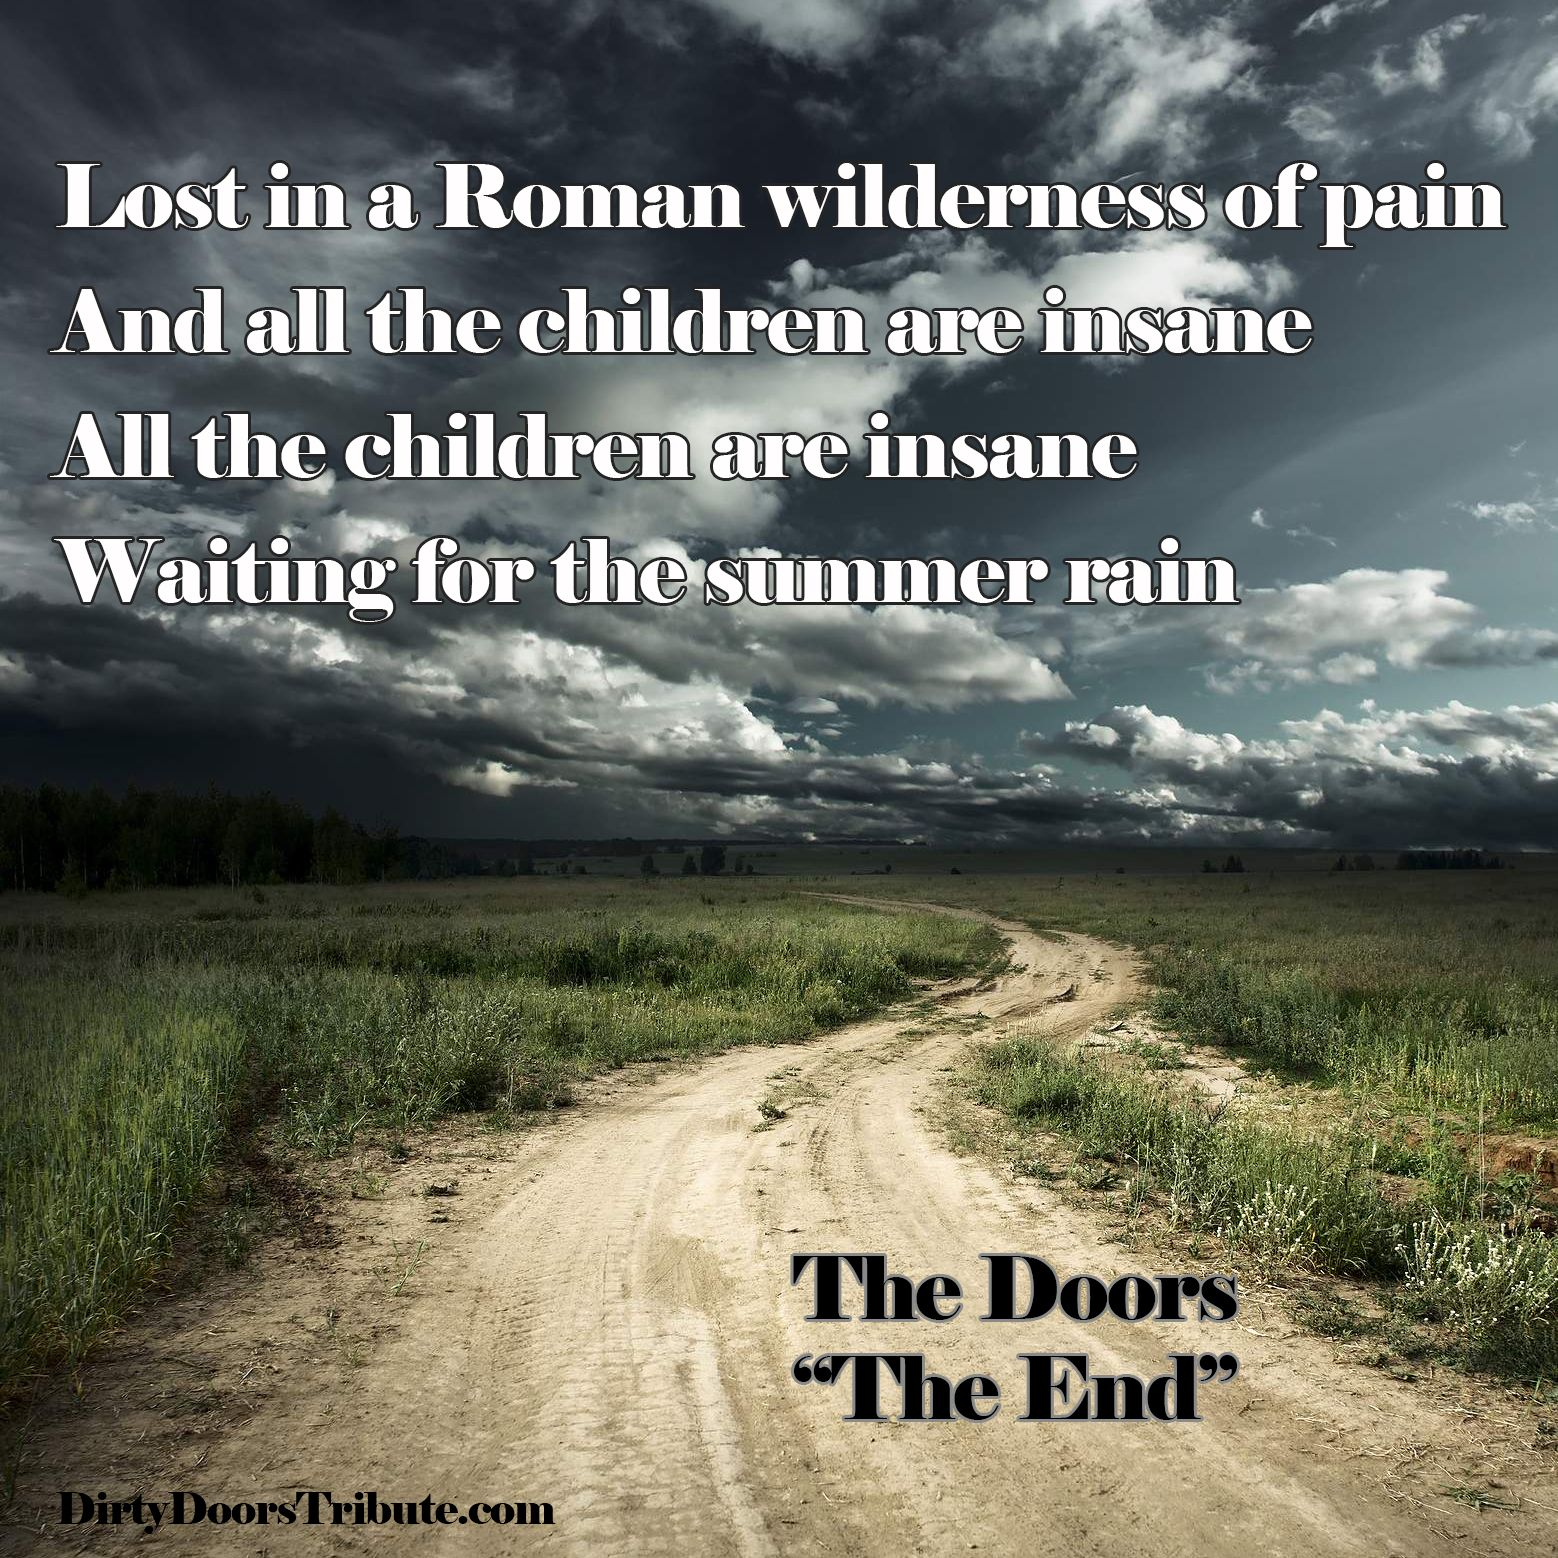 This is the end... #TheDoors #JimMorrison | Doors Lyrics | Pinterest | Jim morrison & This is the end... #TheDoors #JimMorrison | Doors Lyrics ...